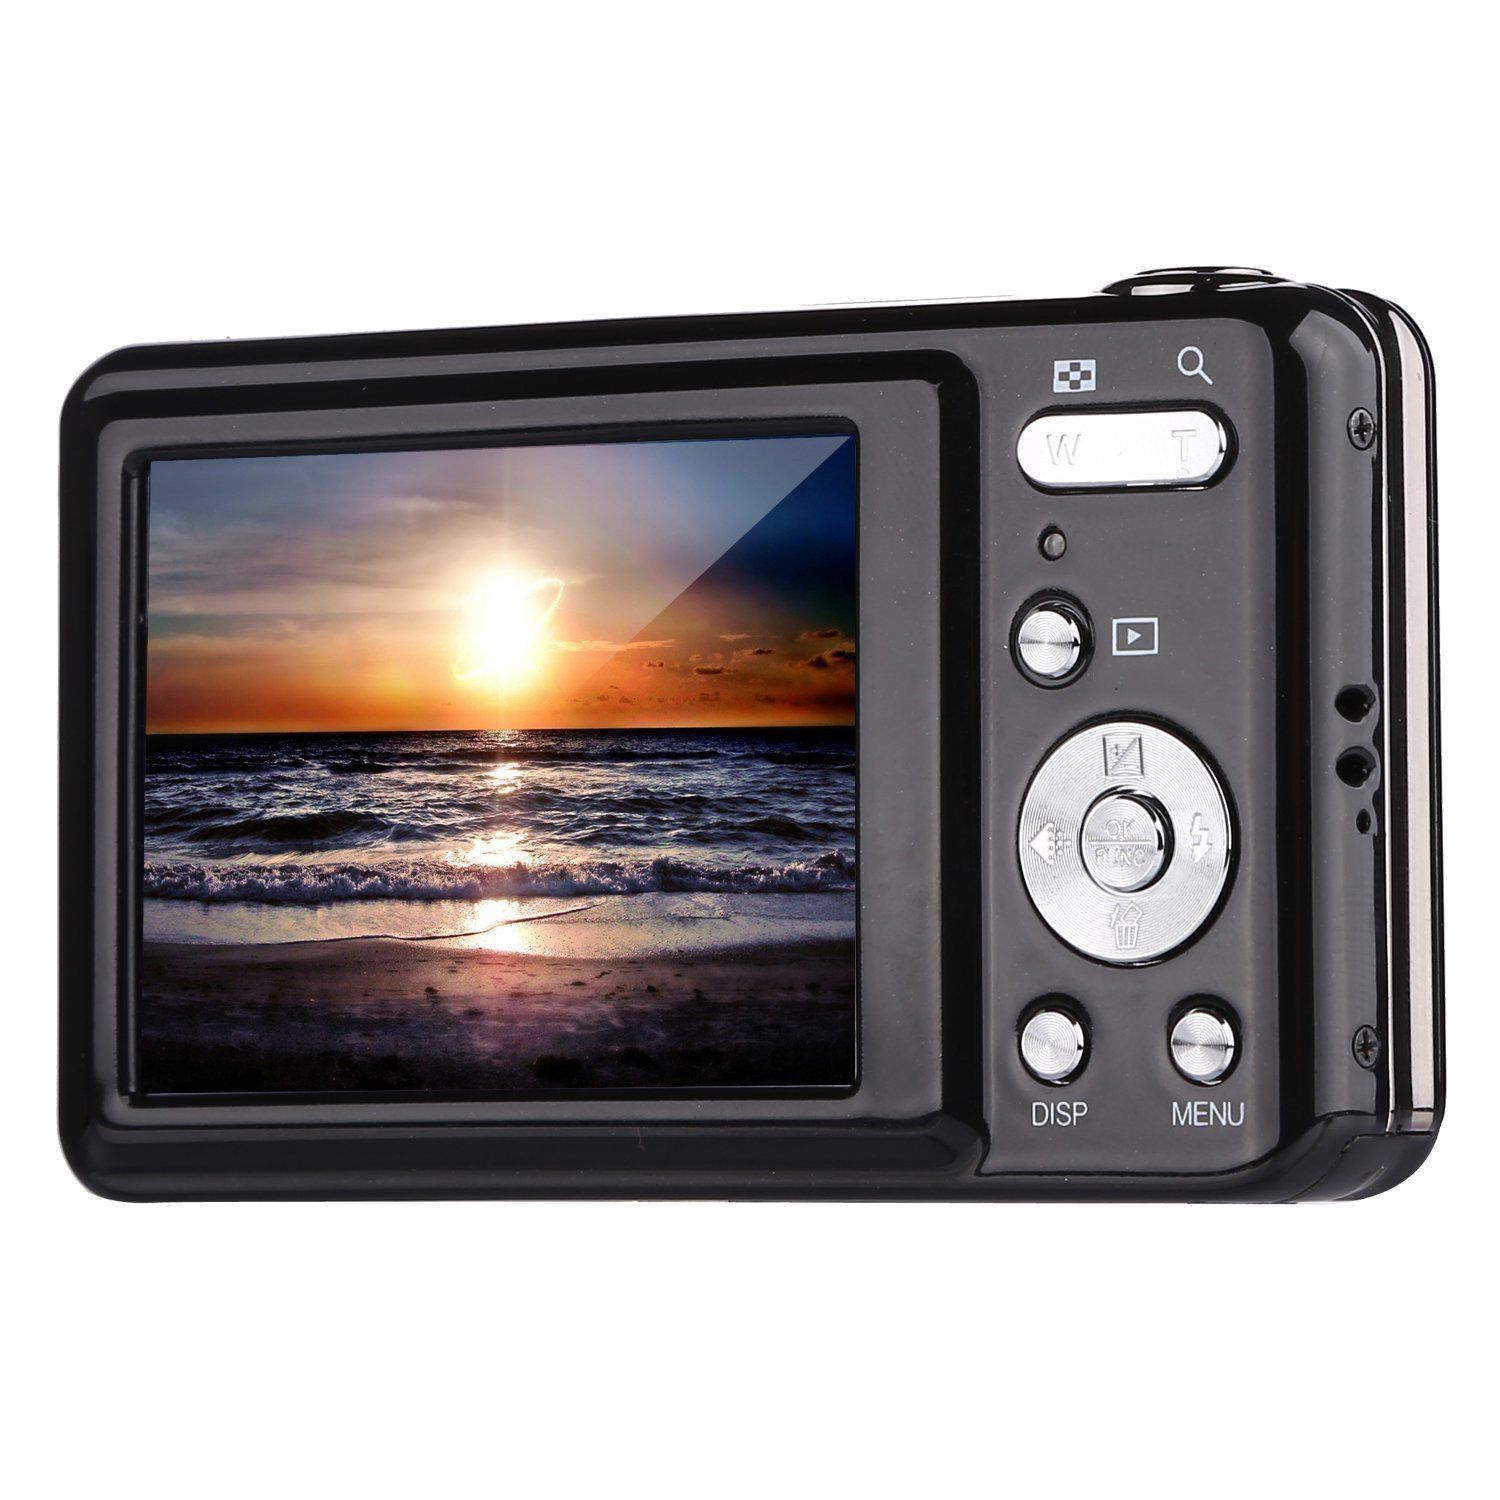 Digital Camera,Bigaint BG007 2.7' TFT 1280x720 5X Optical Zoom 15MP HD Anti-shake Smile Capture Digital Video Camera-Black